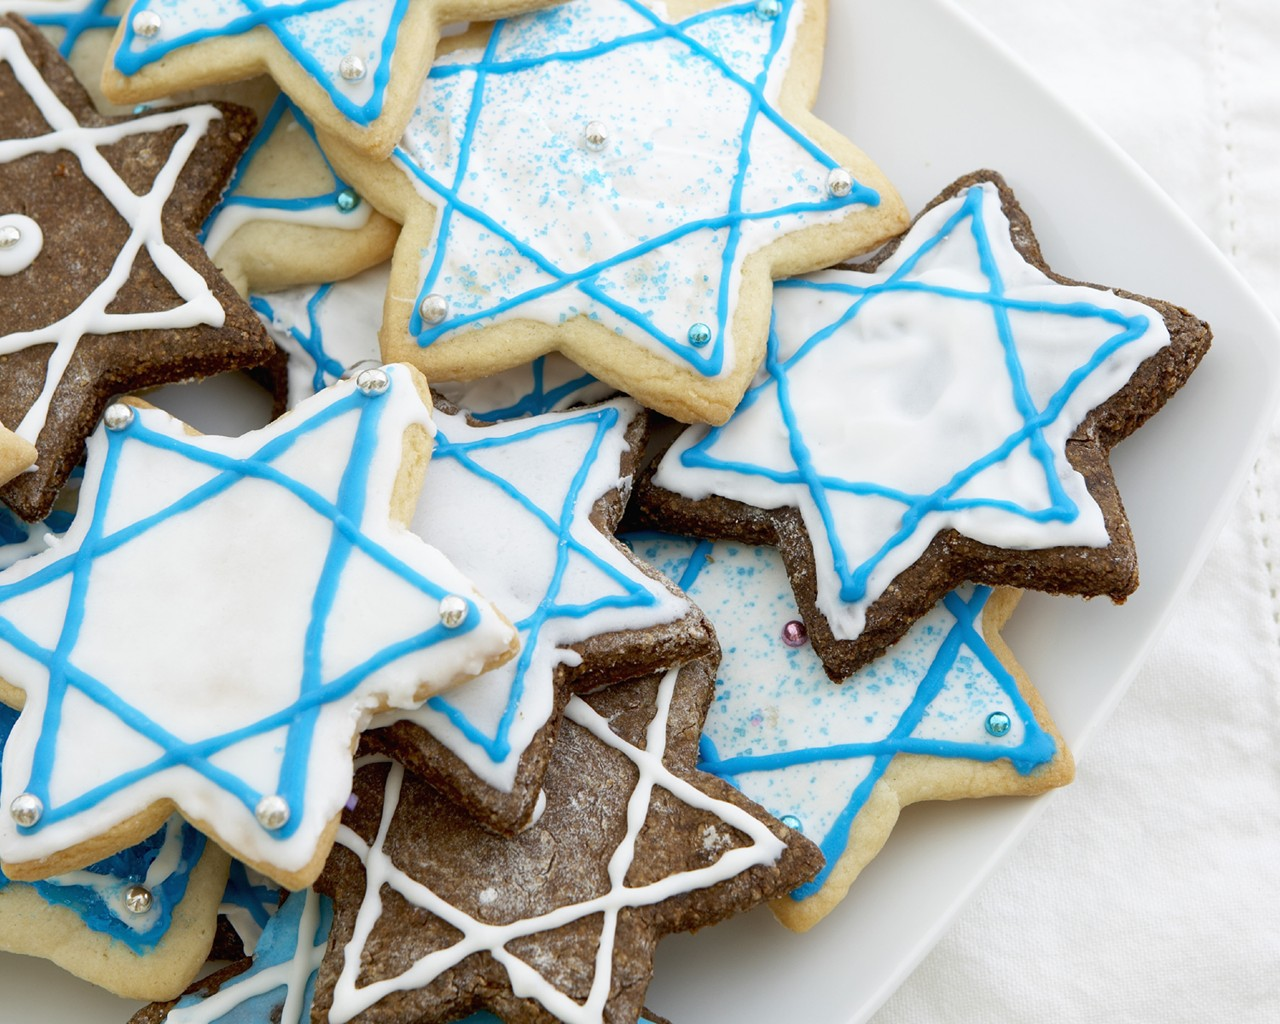 freegreatpicture-com-31253-christmas-and-hanukkah-wallpaper